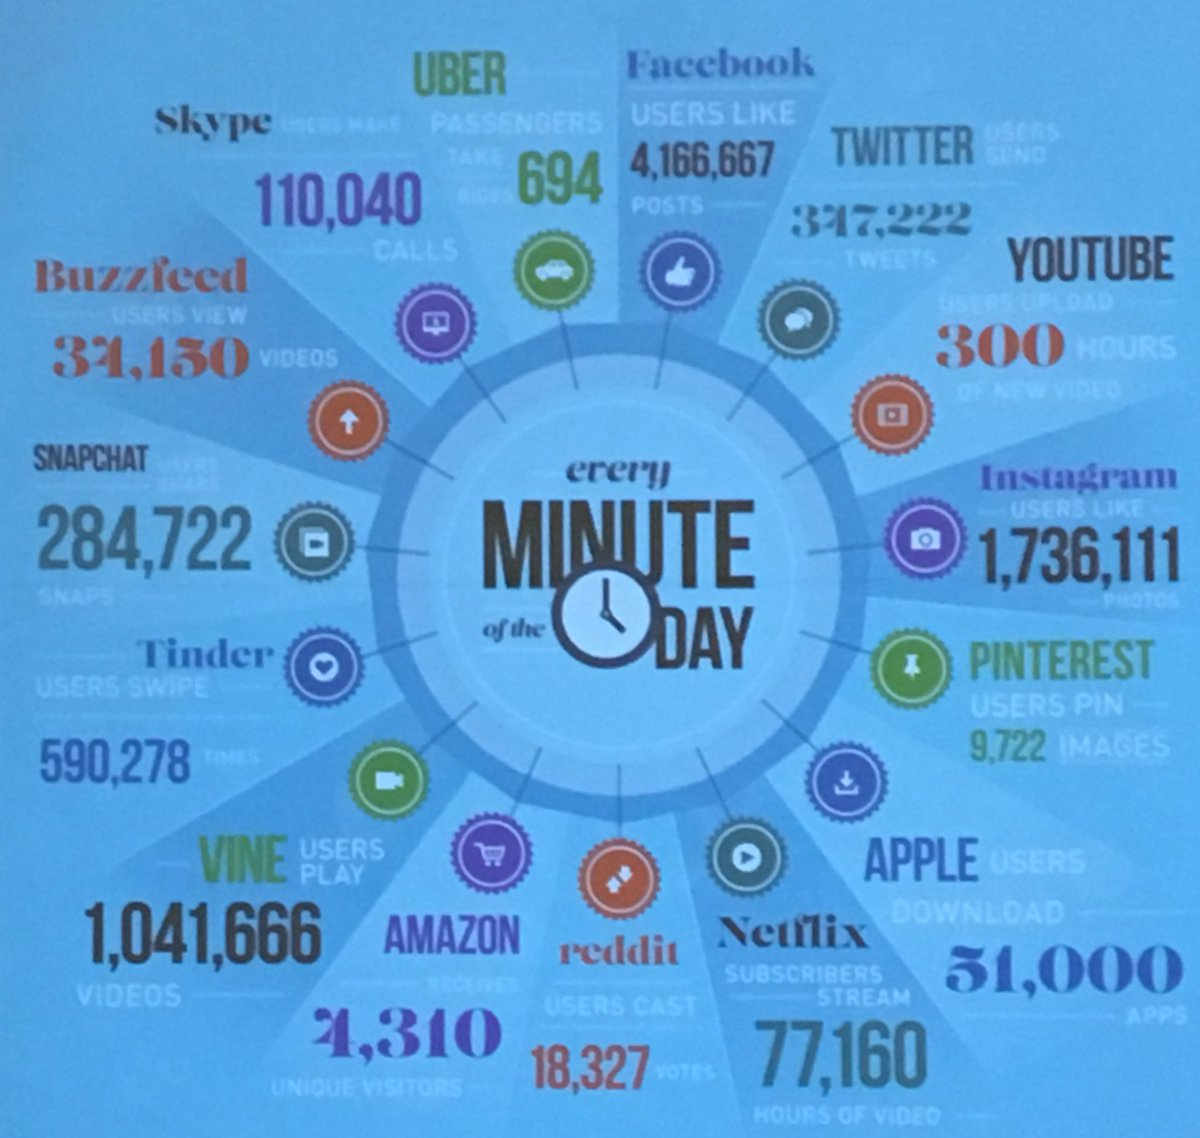 RT @andrewtwallace: What happens every 60 seconds on the internet via @k_shelton #ACTEM17 https://t.co/1J2NmdRbpM